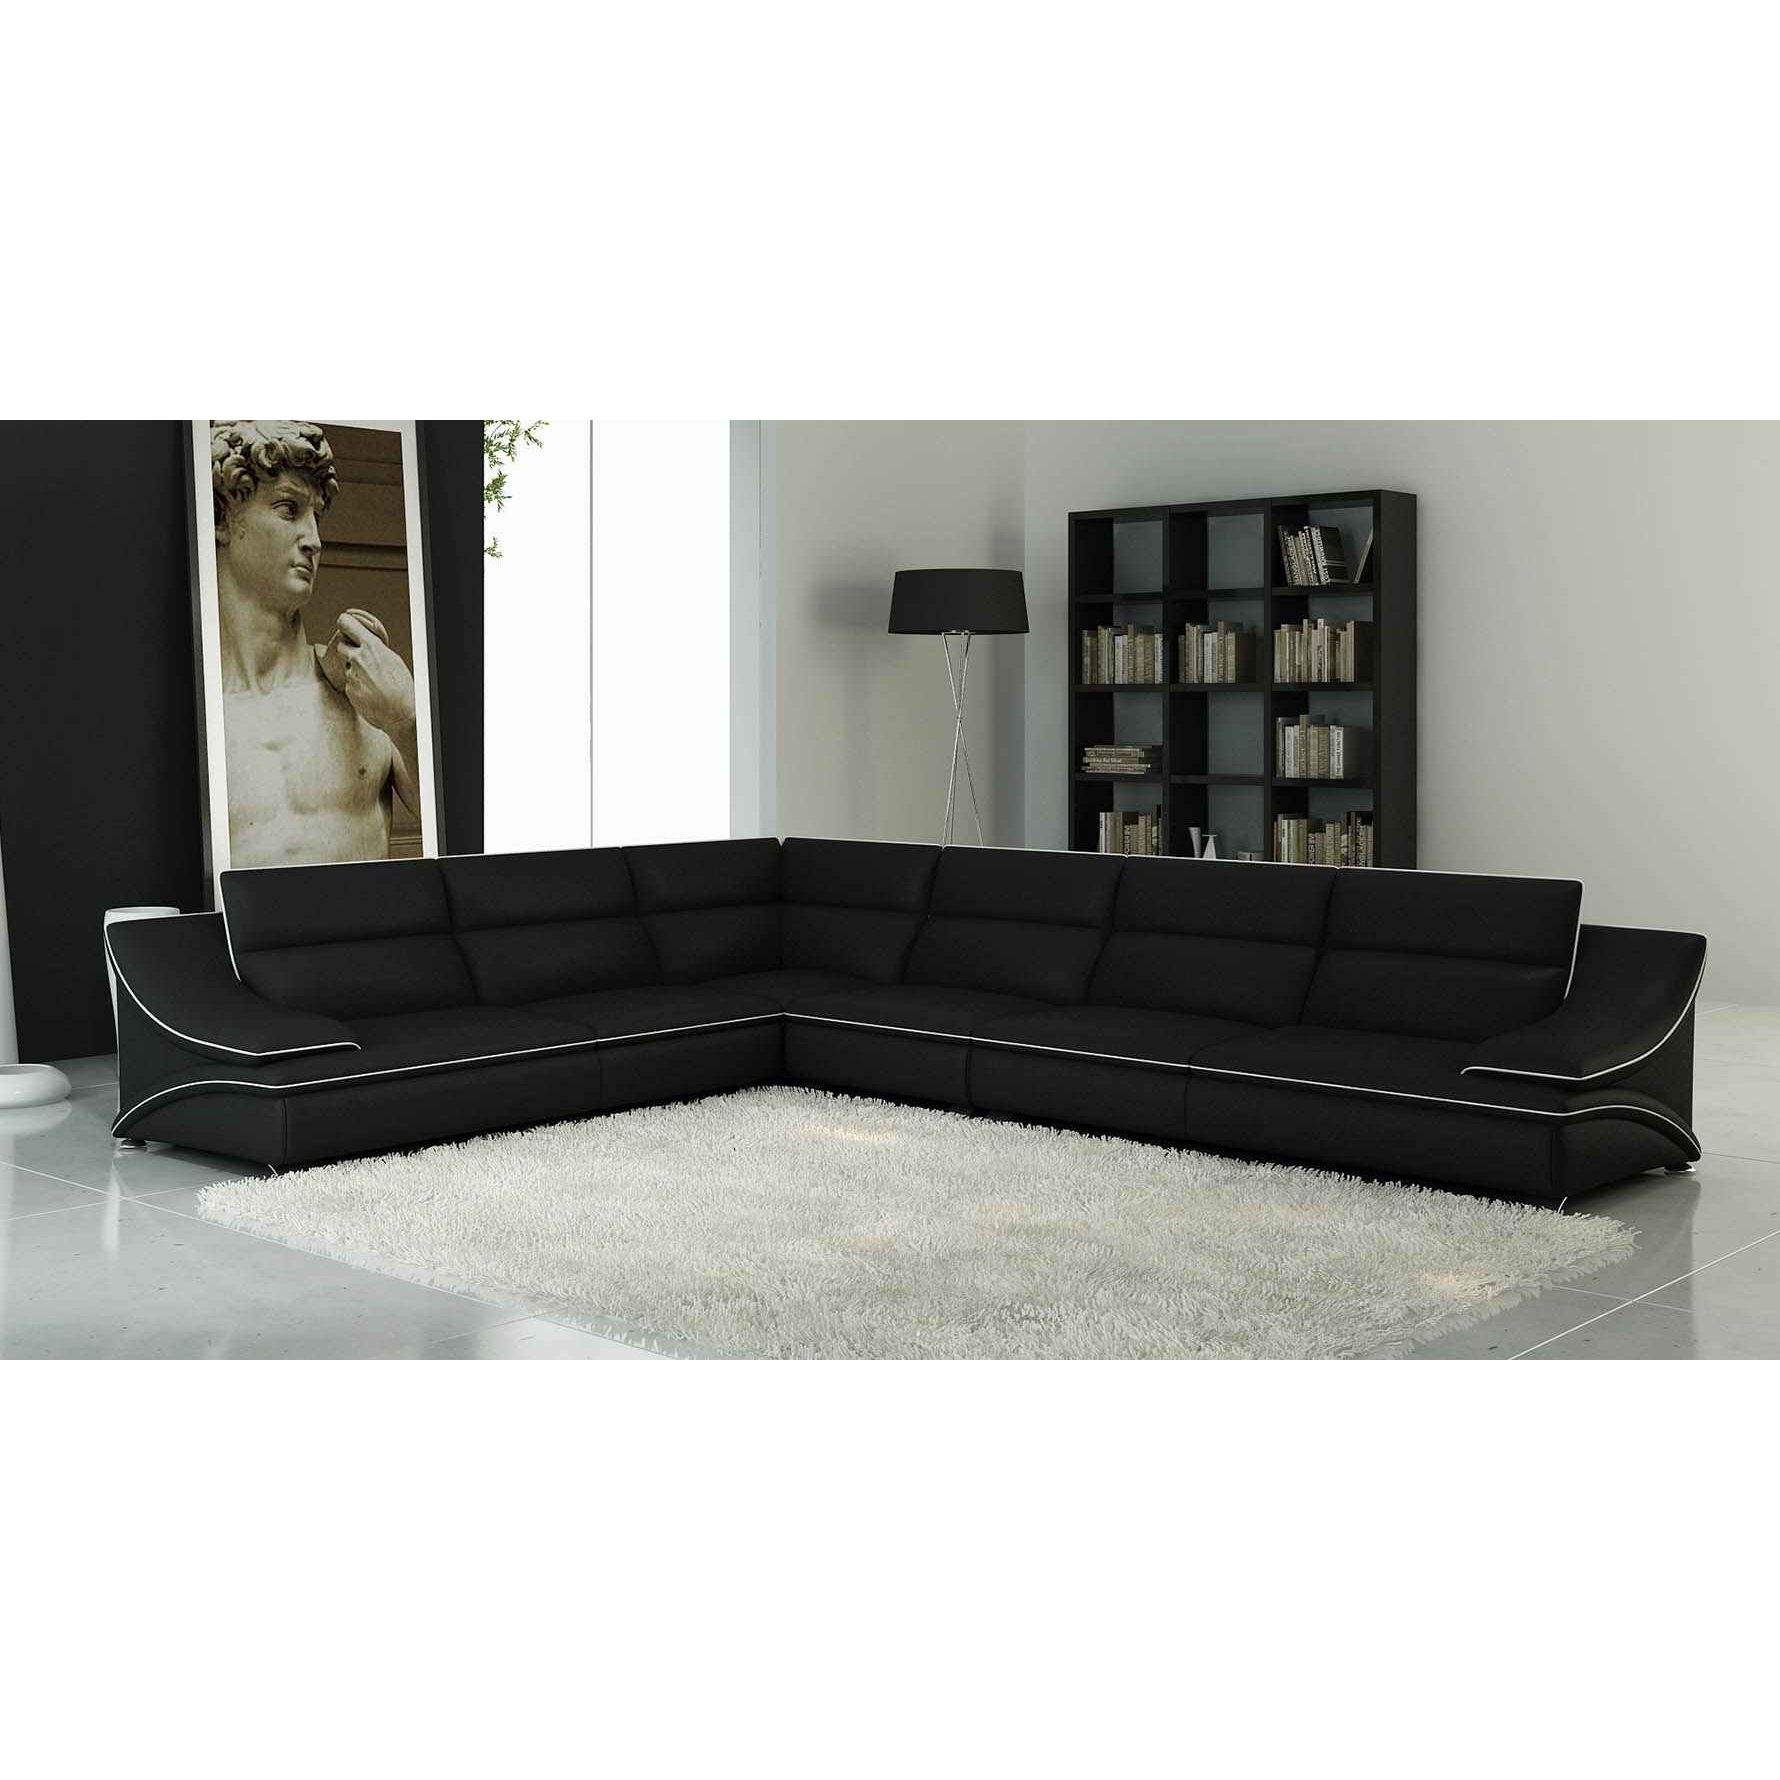 Deco in paris canape d angle modulable cuir design noir for Canape noir et blanc